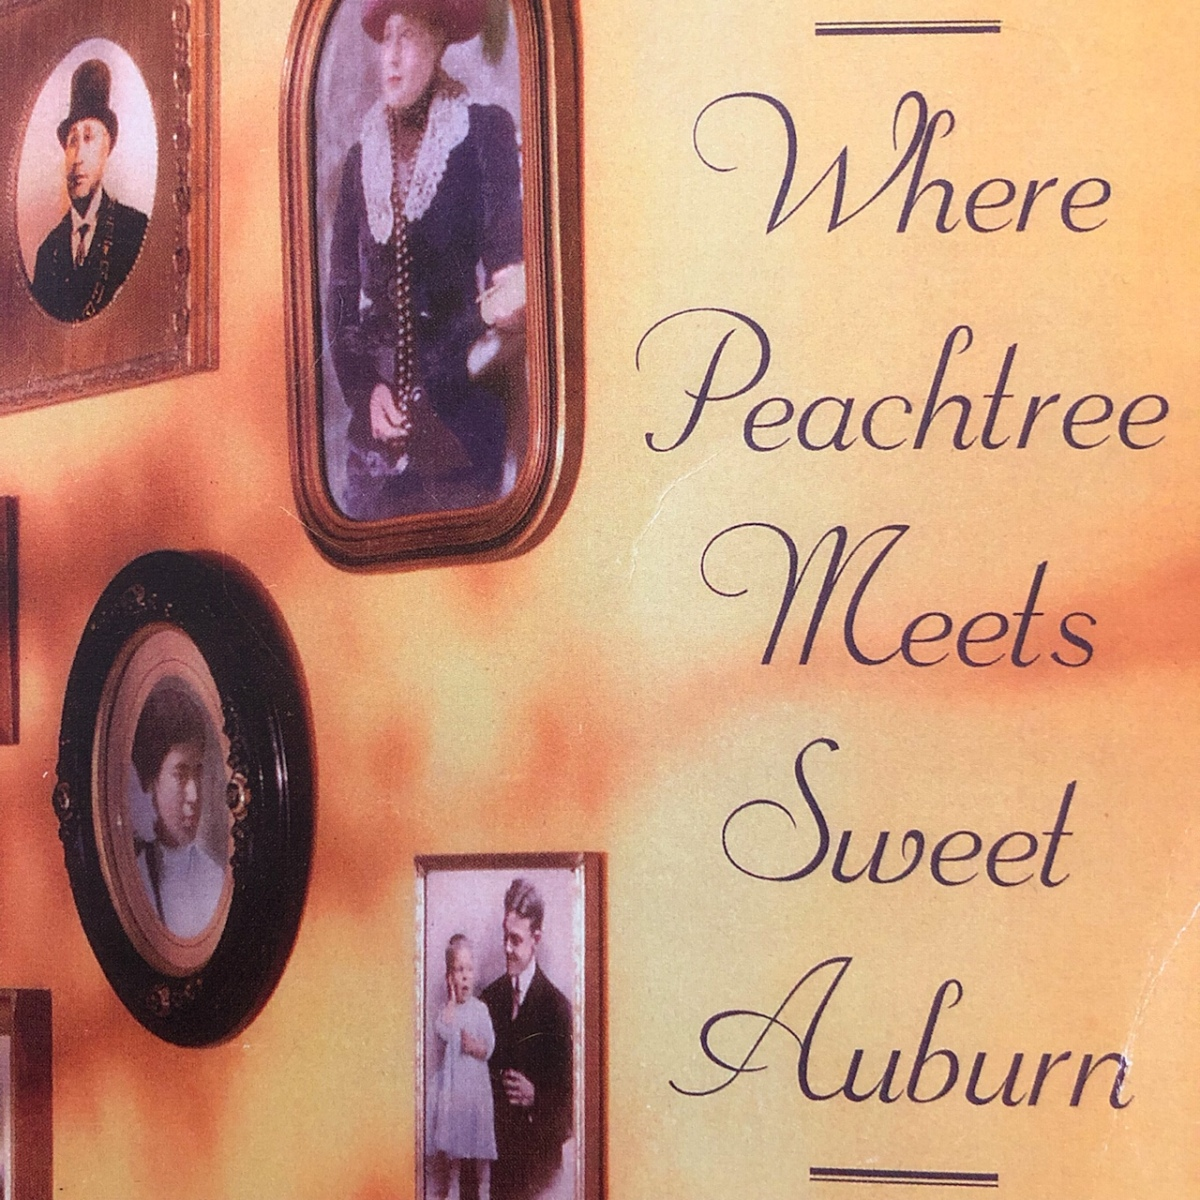 The Nitty Gritty: A Remotely Intellectual Review of Where Peachtree Meets Sweet Auburn